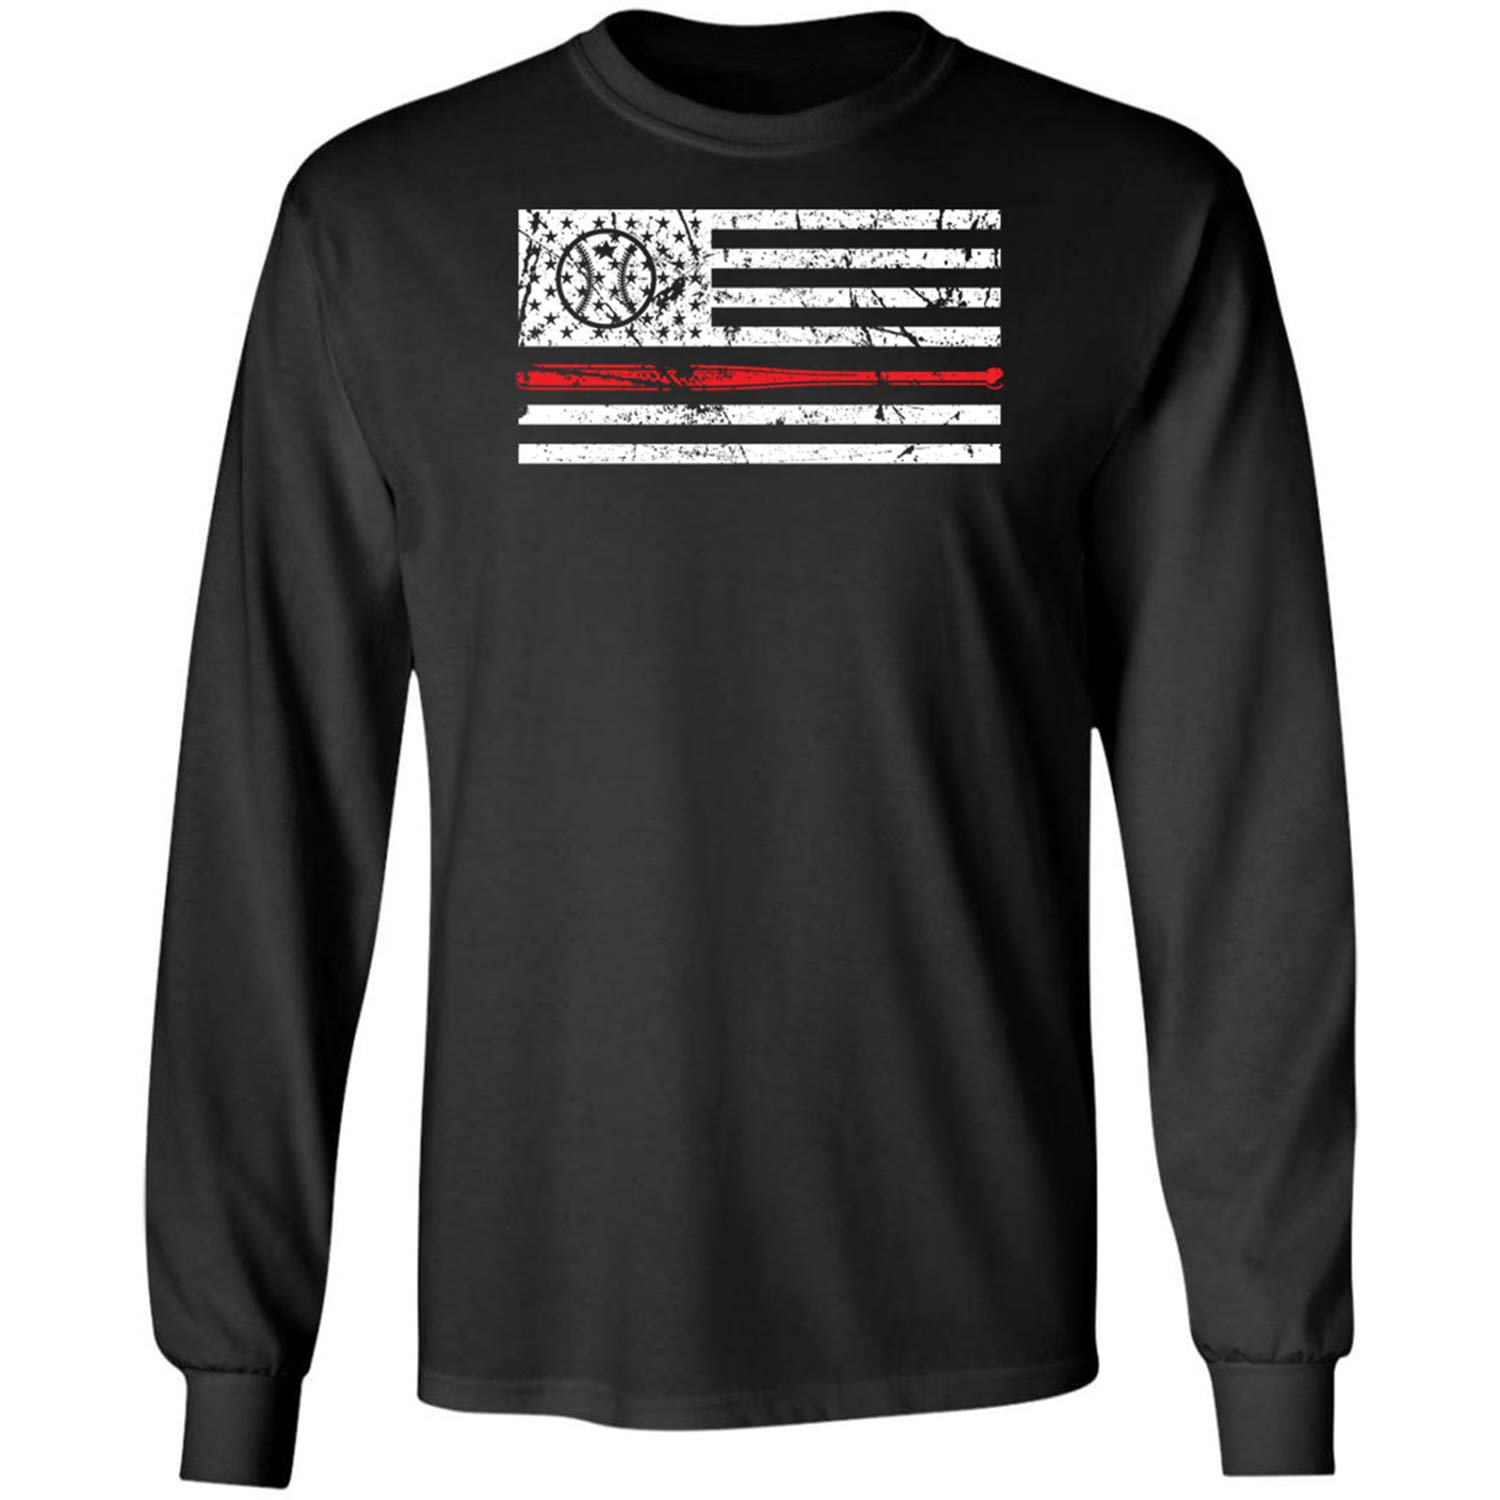 8368c1be19c728 1 Black Black Black Teechopchop Baseball American Flag USA Ameri Long  Sleeve Shirt 78c141